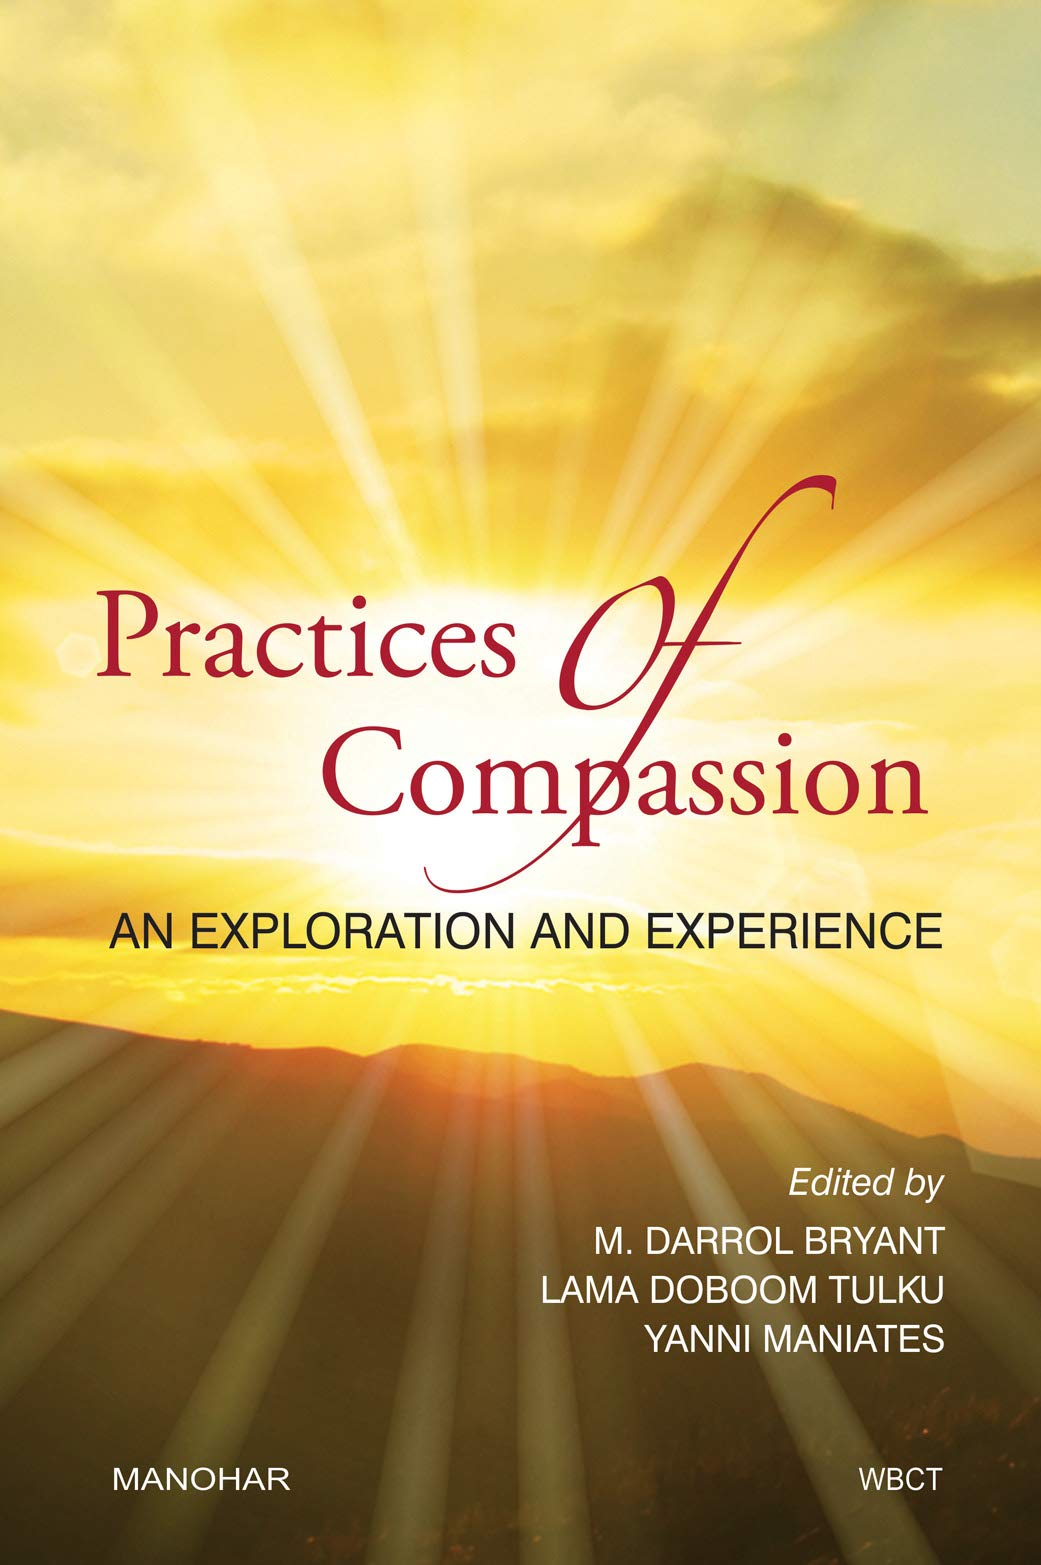 Practices of Compassion: An Exploration and Experience